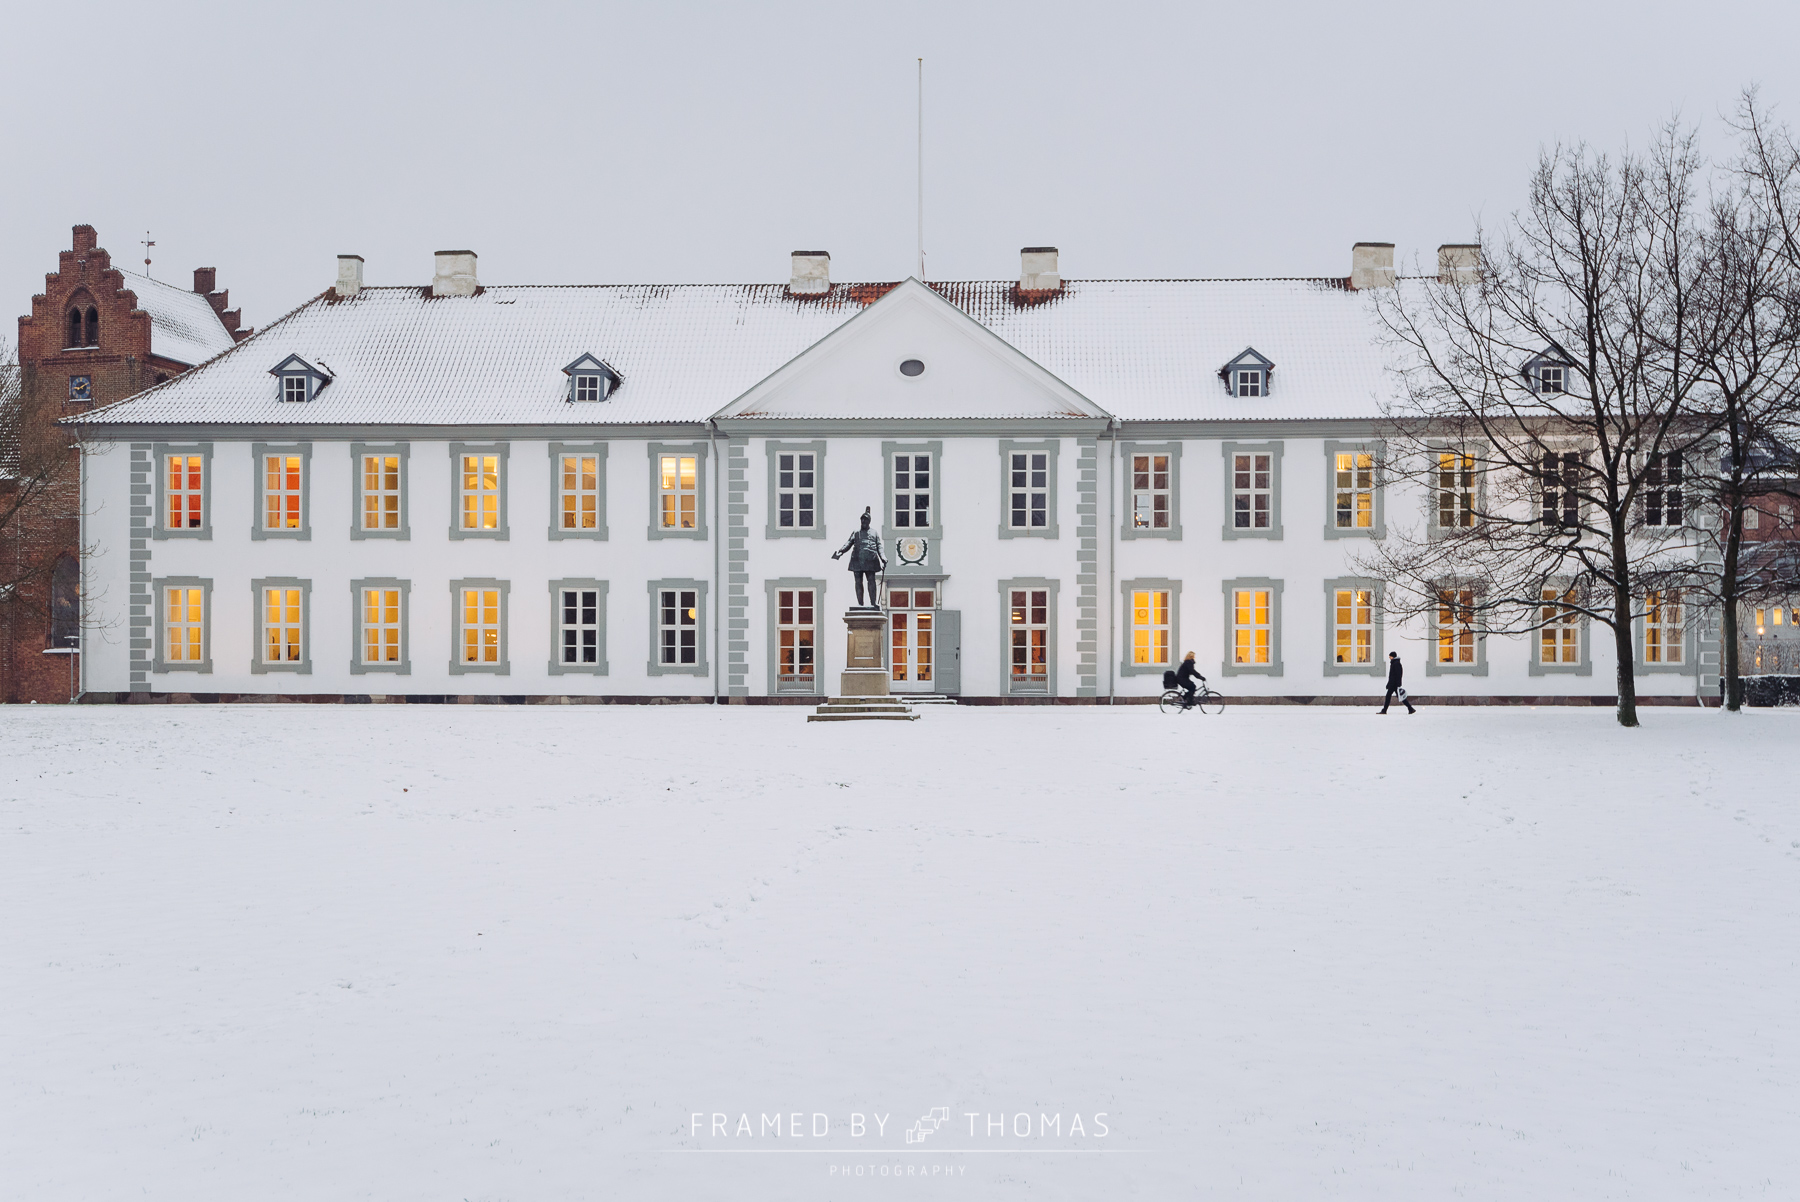 Odense, Denmark - January 8, 2015: The front of a snow covered O